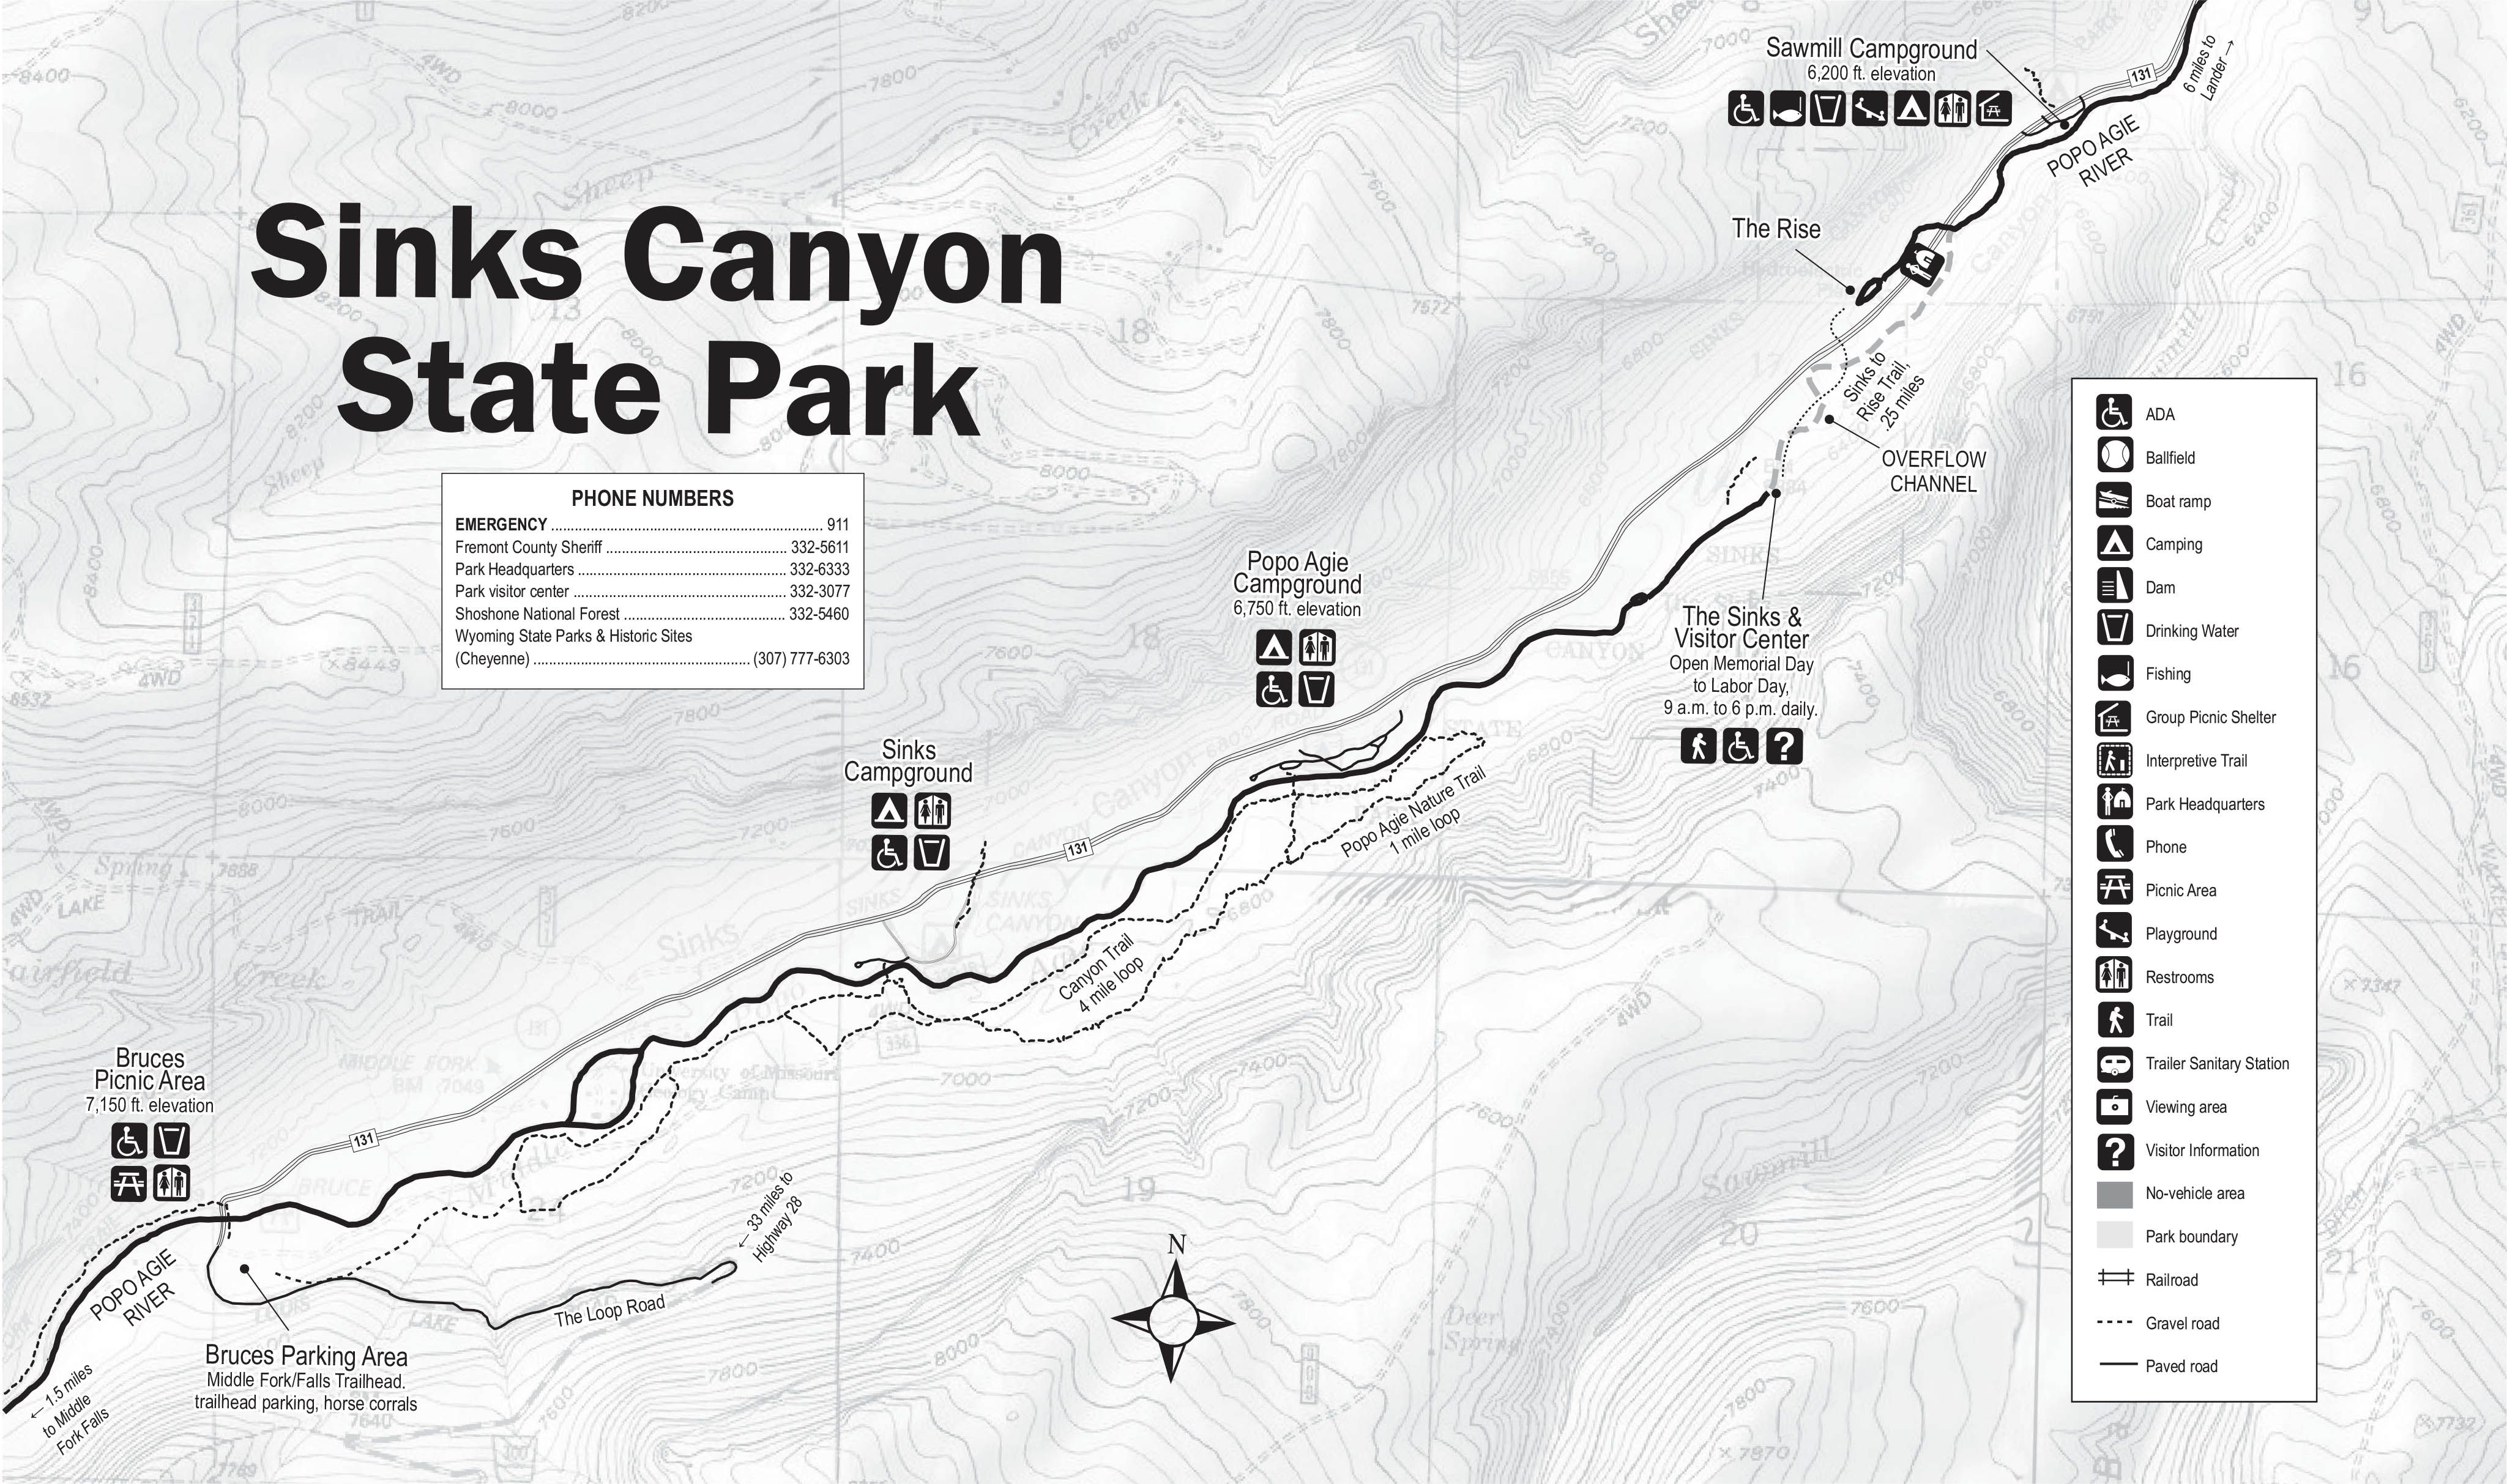 Map Of Sinks Canyon State Park State Parks Sinks Canyon States